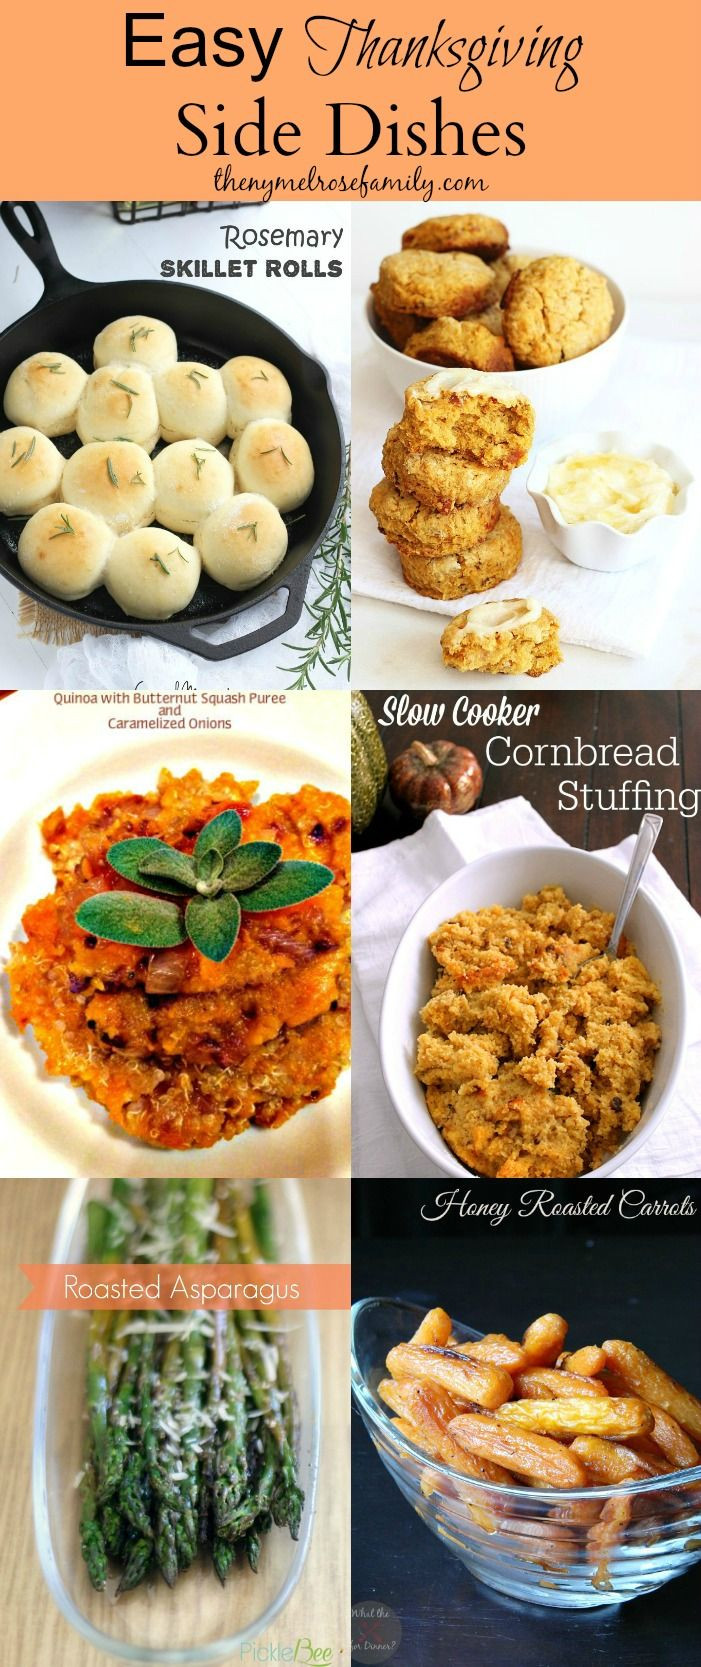 Side Dishes For Thanksgiving Easy  199 best images about Easy Thanksgiving Recipes & Crafts